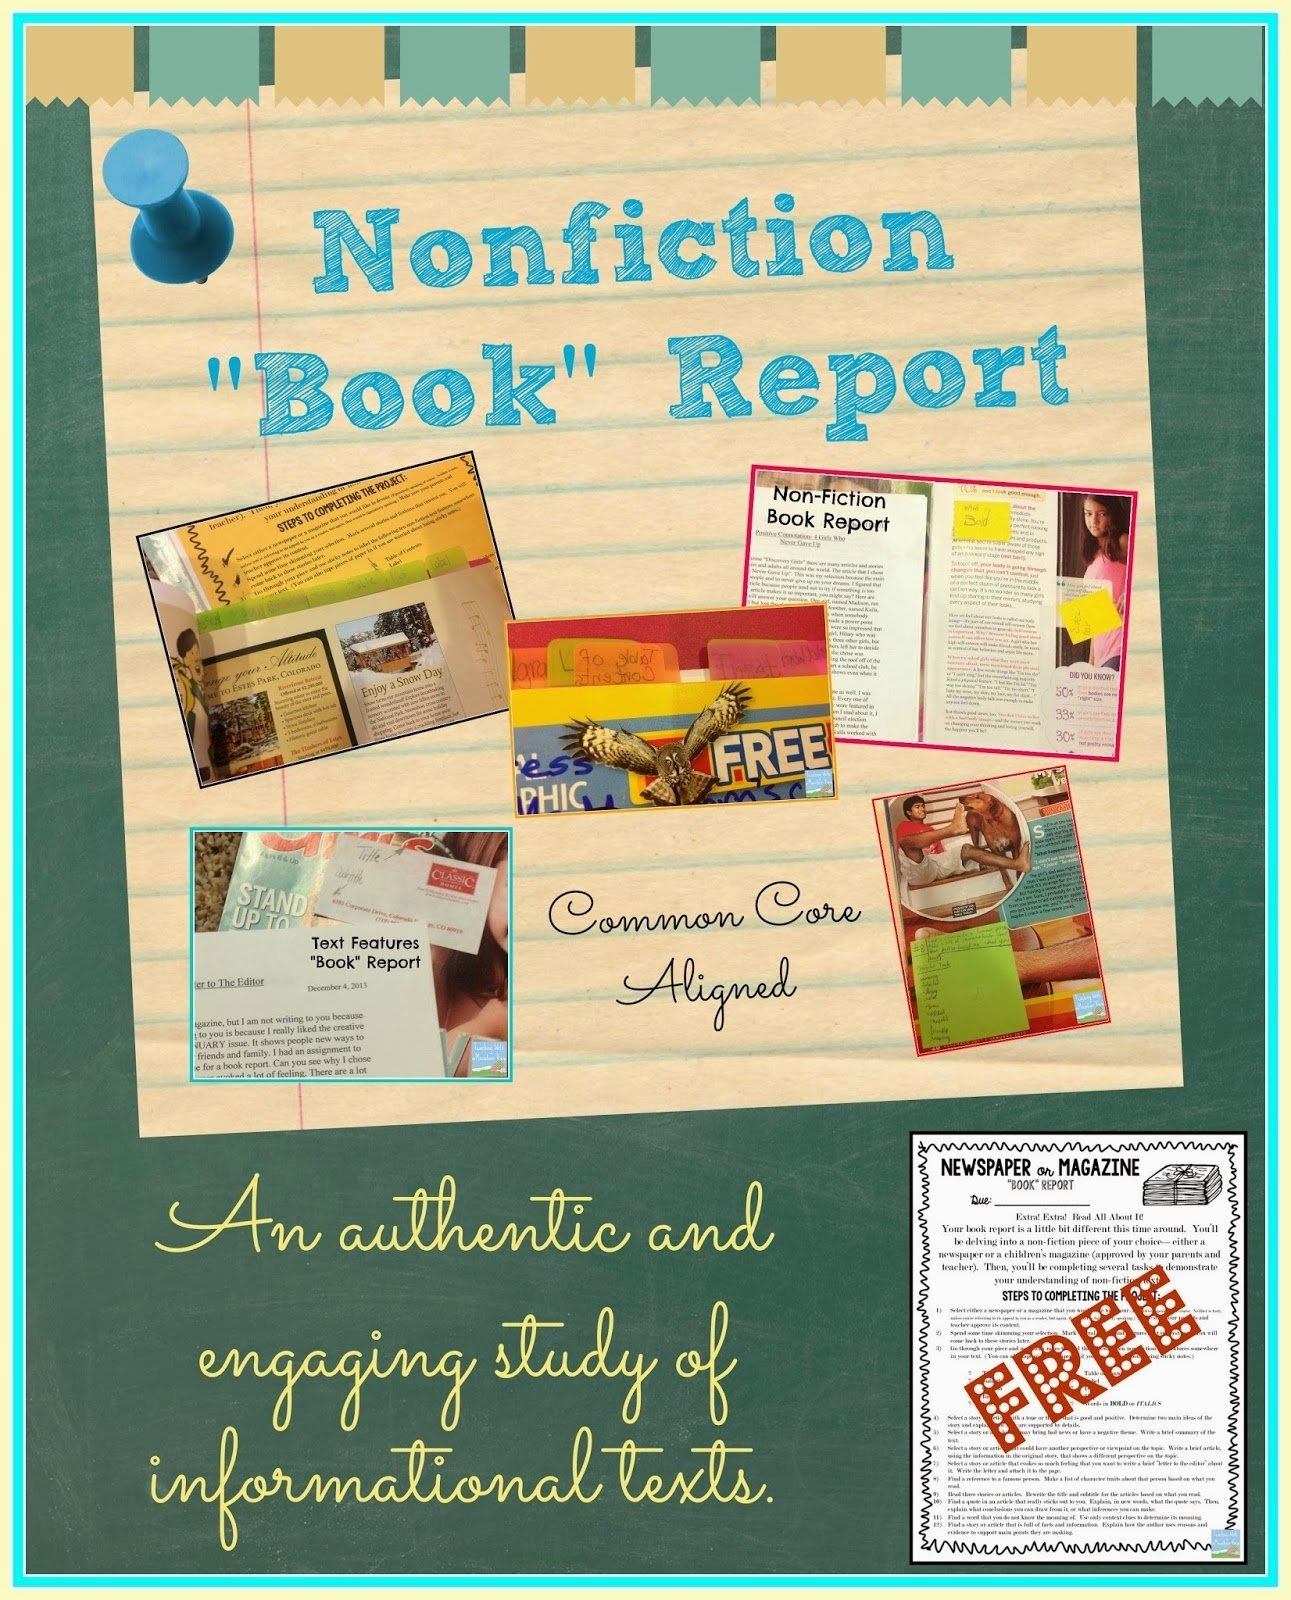 10 Trendy Non Fiction Book Report Ideas teaching with a mountain view non fiction newspaper or magazine 2021